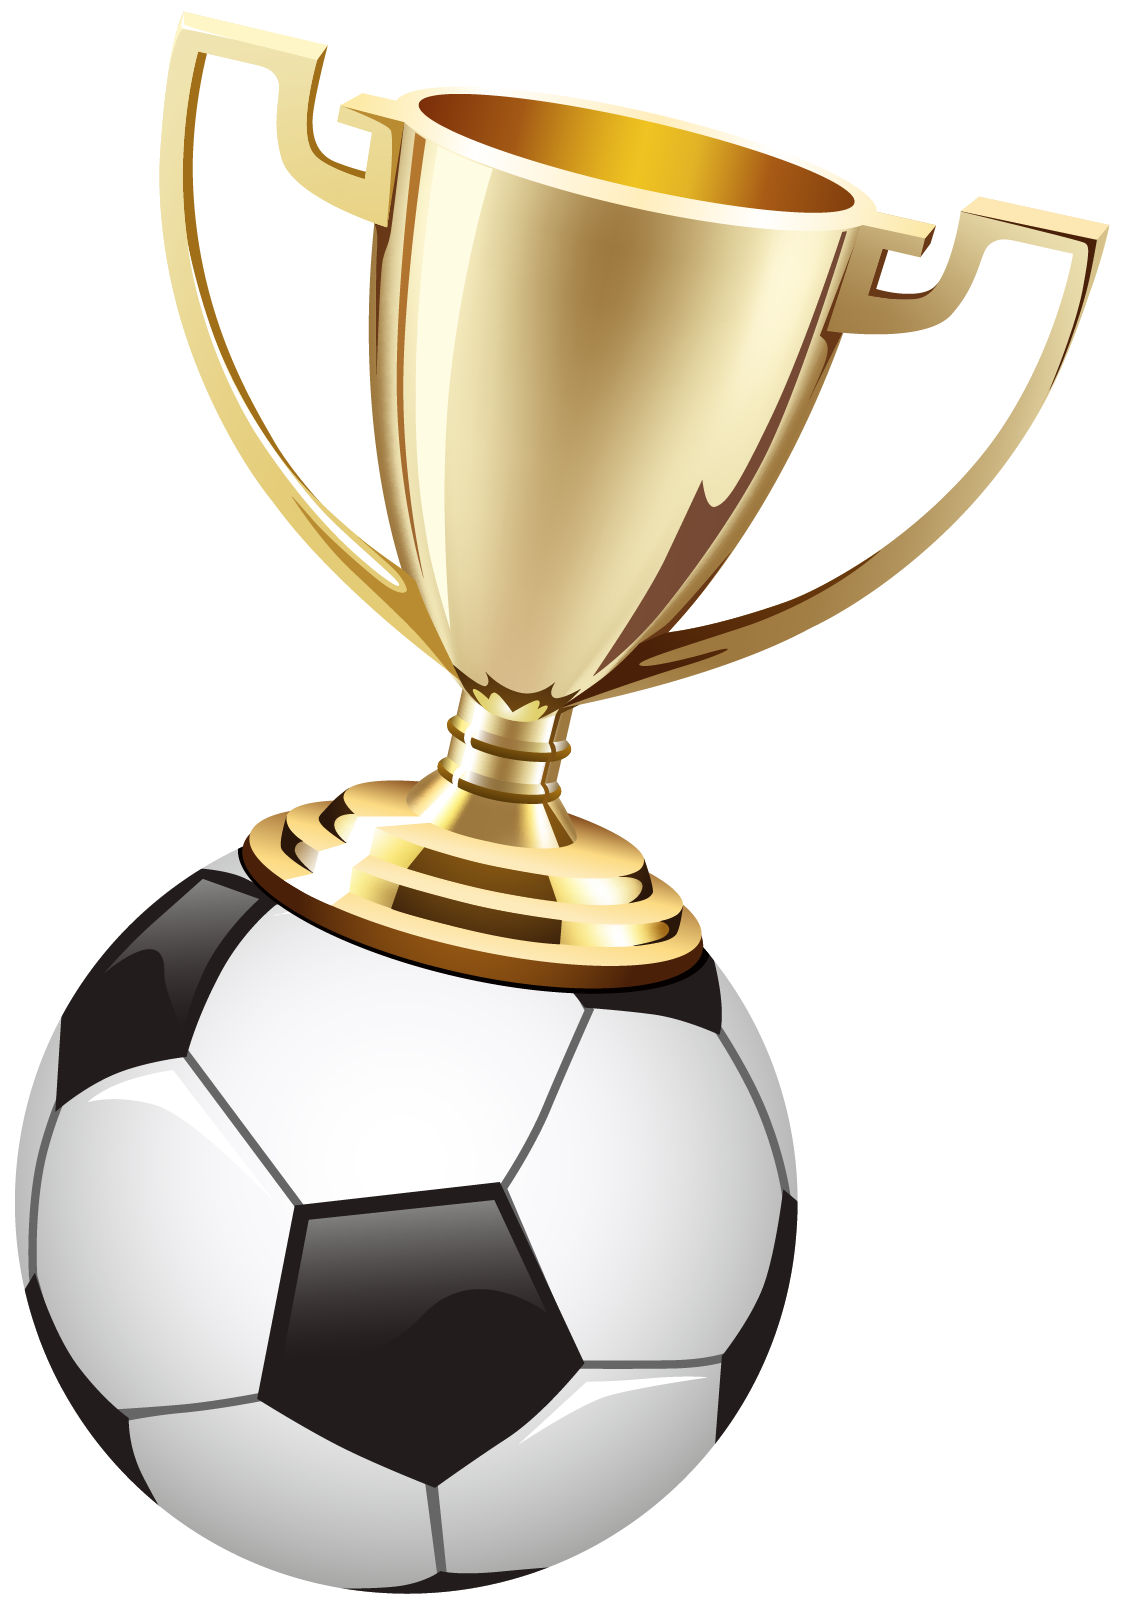 Football trophies clipart clip art library library FIFA World Cup Wallsend FC Football Clip art - Soccer Trophy 1128 ... clip art library library